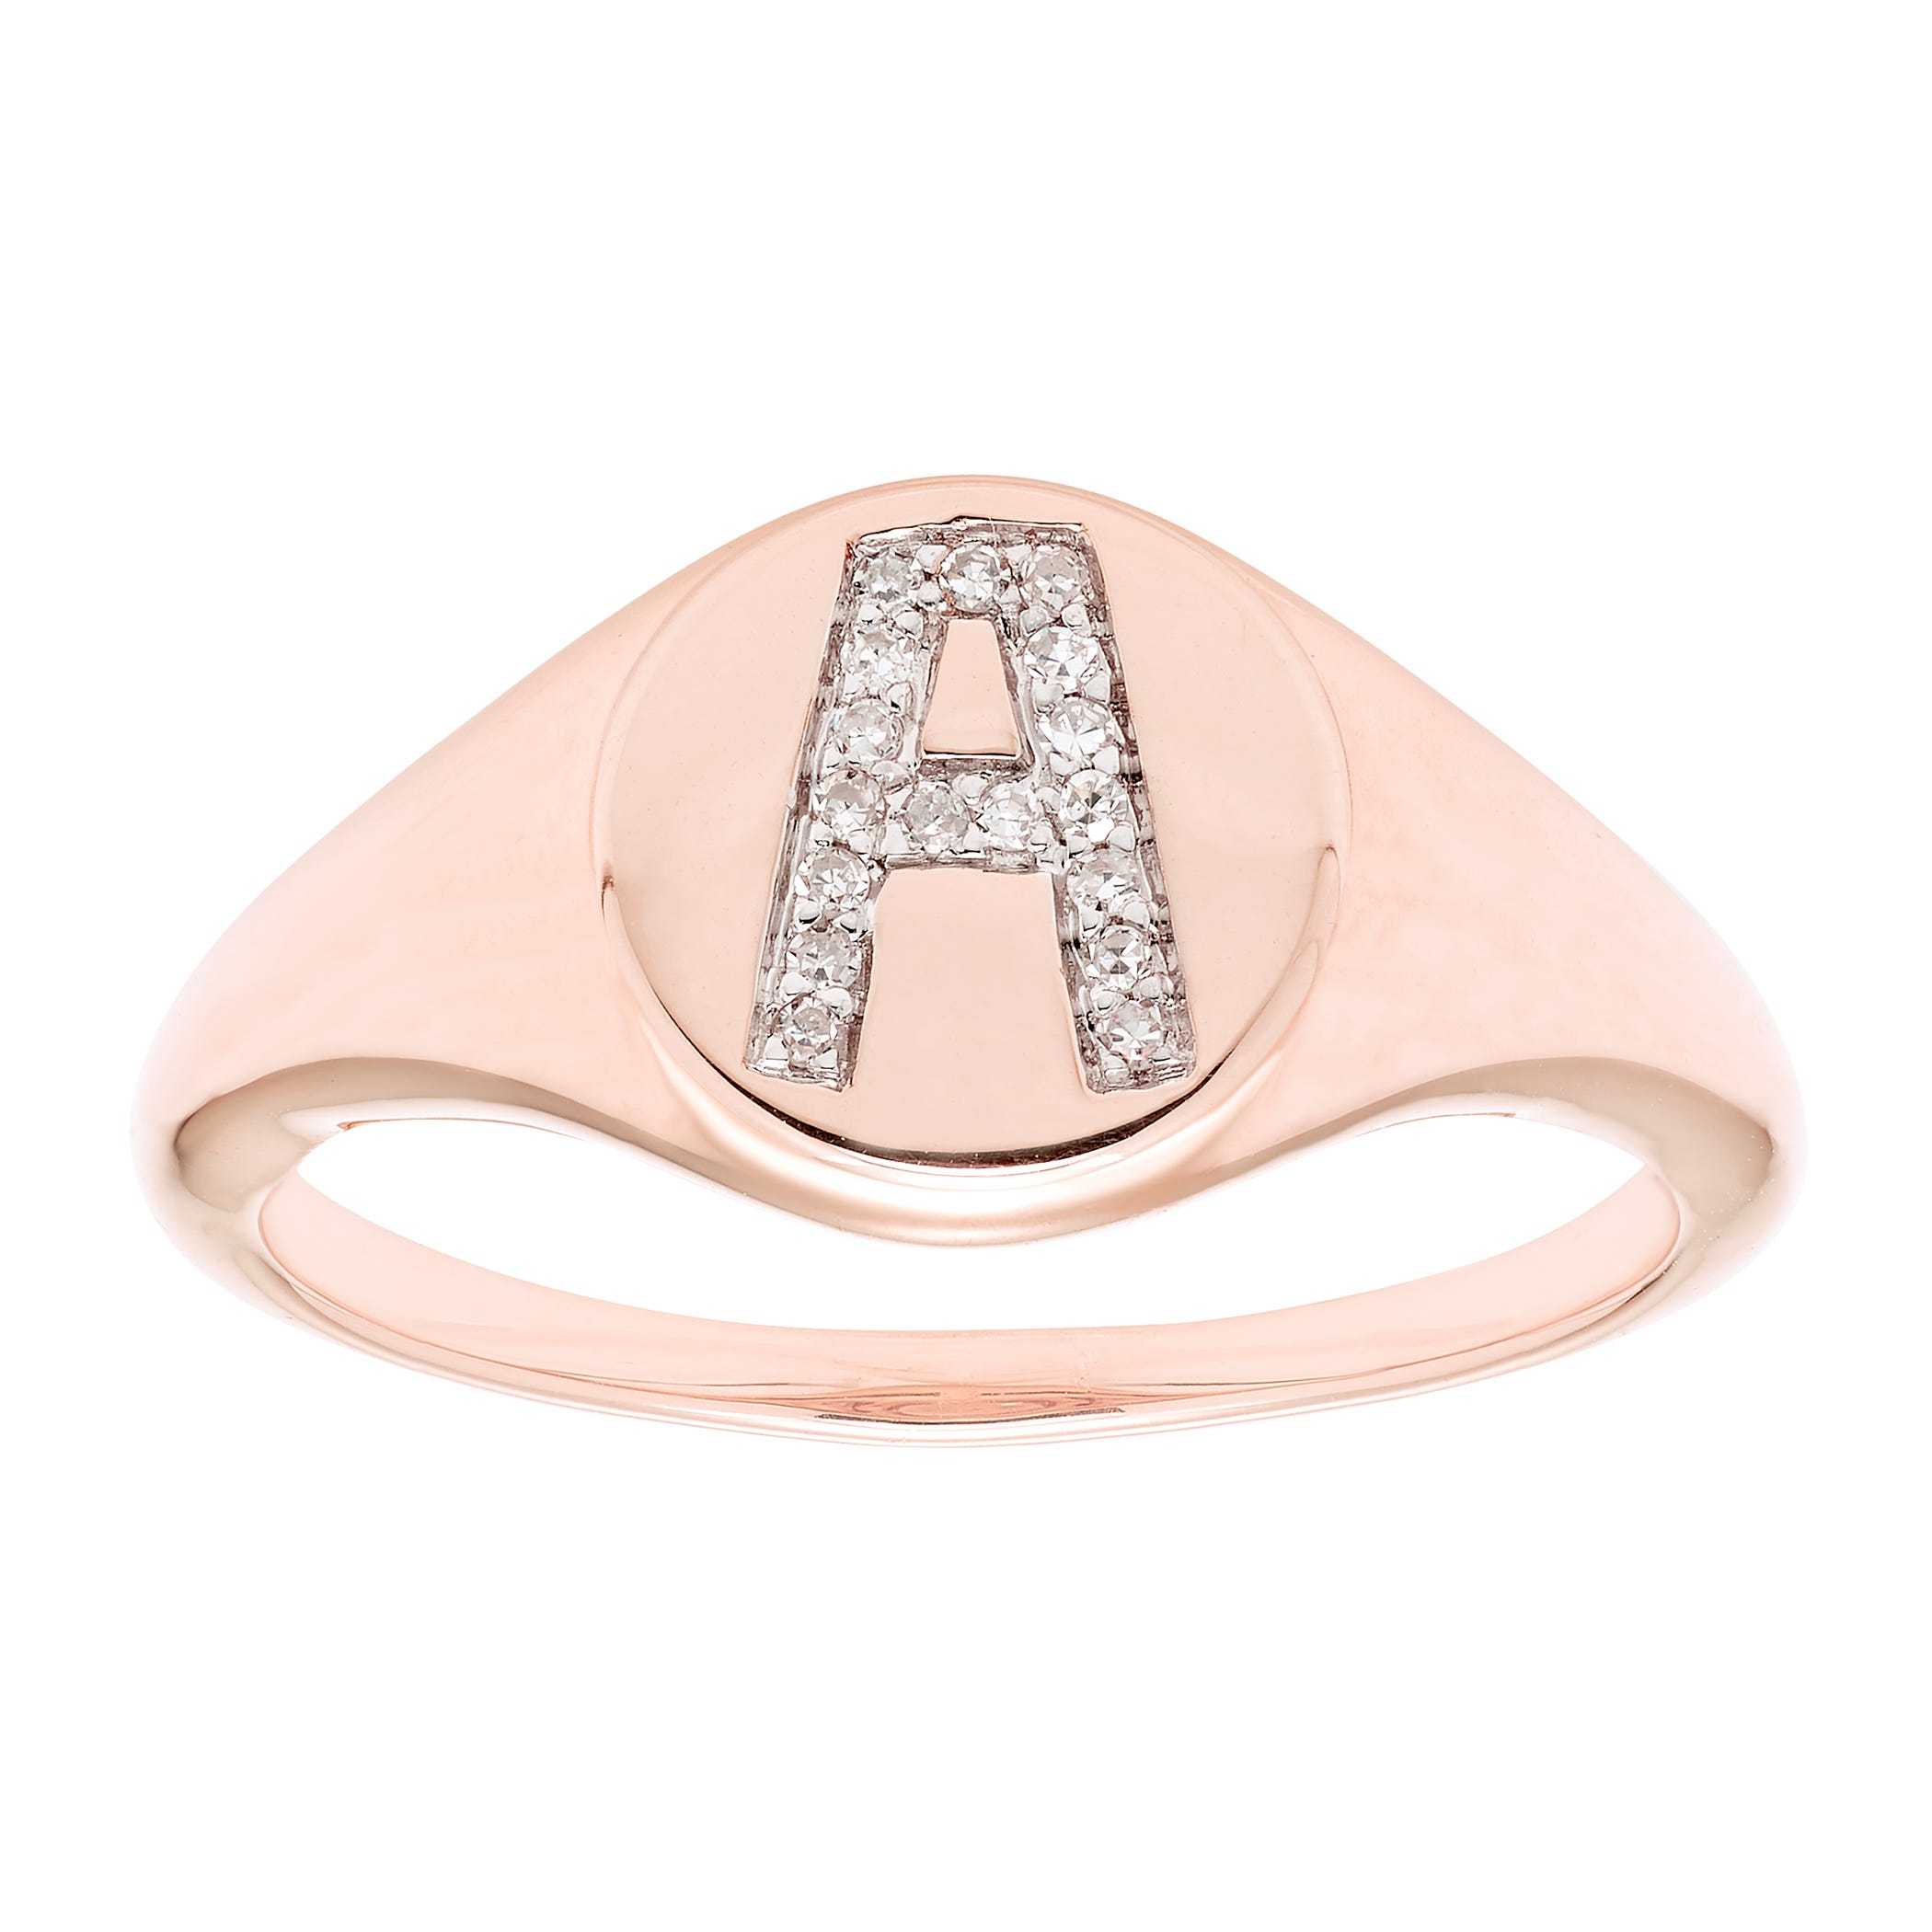 Diamond Initial A Signet Ring in 14k Rose Gold